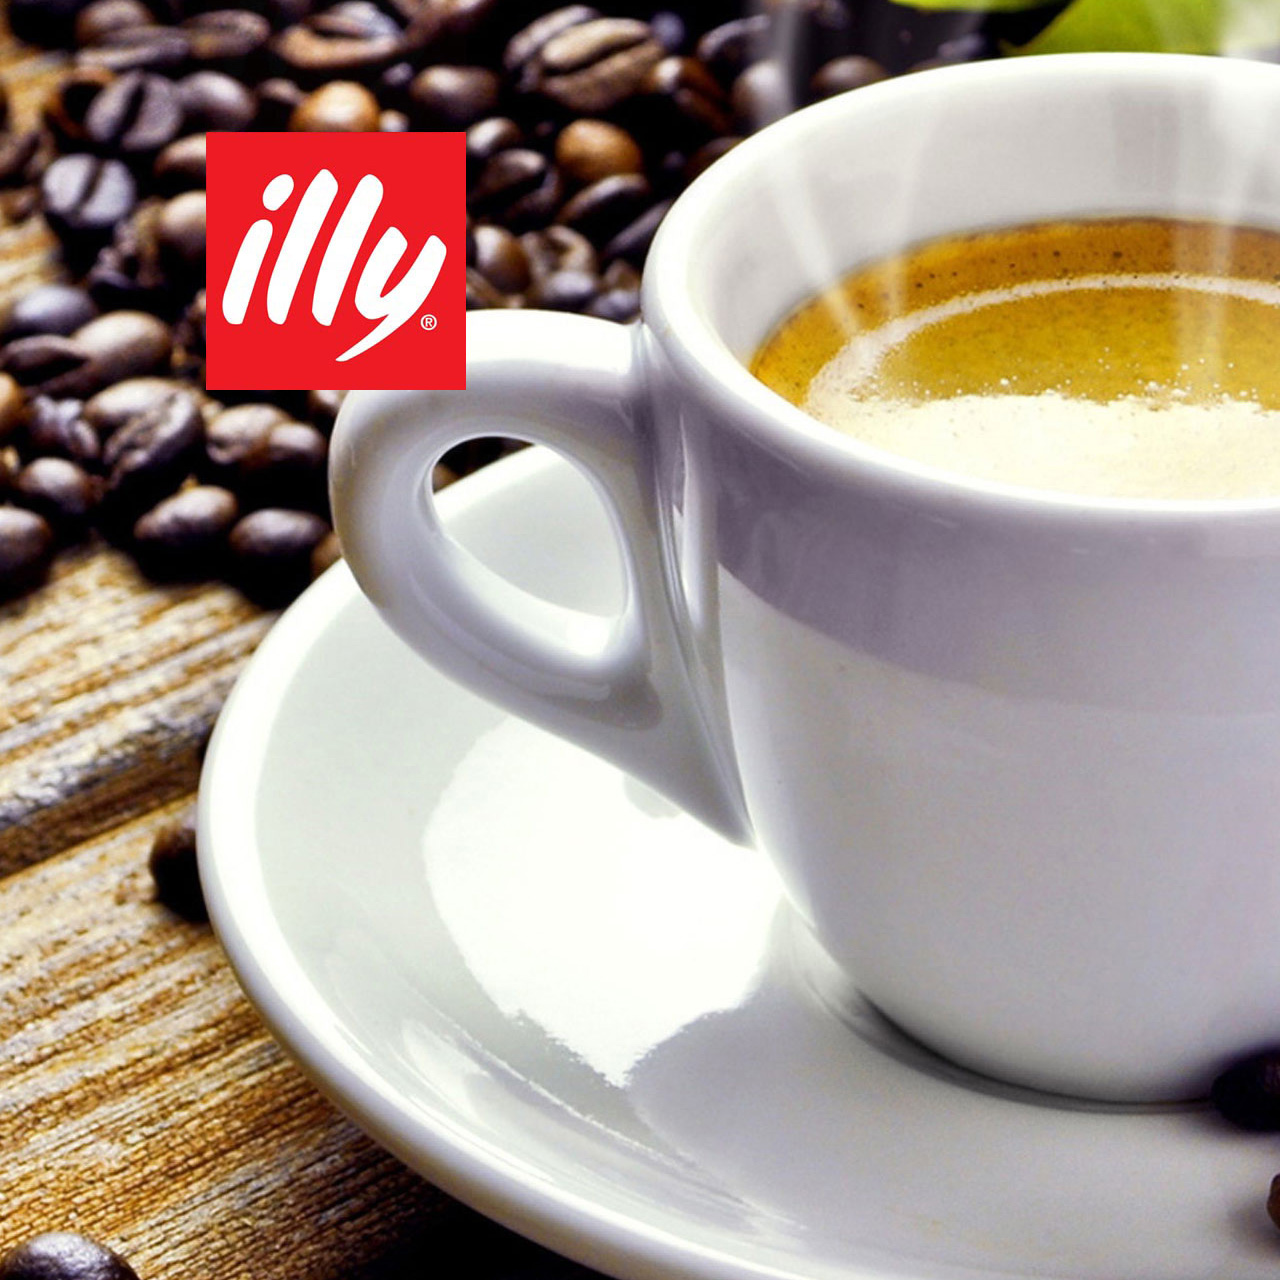 bages-vending-illy